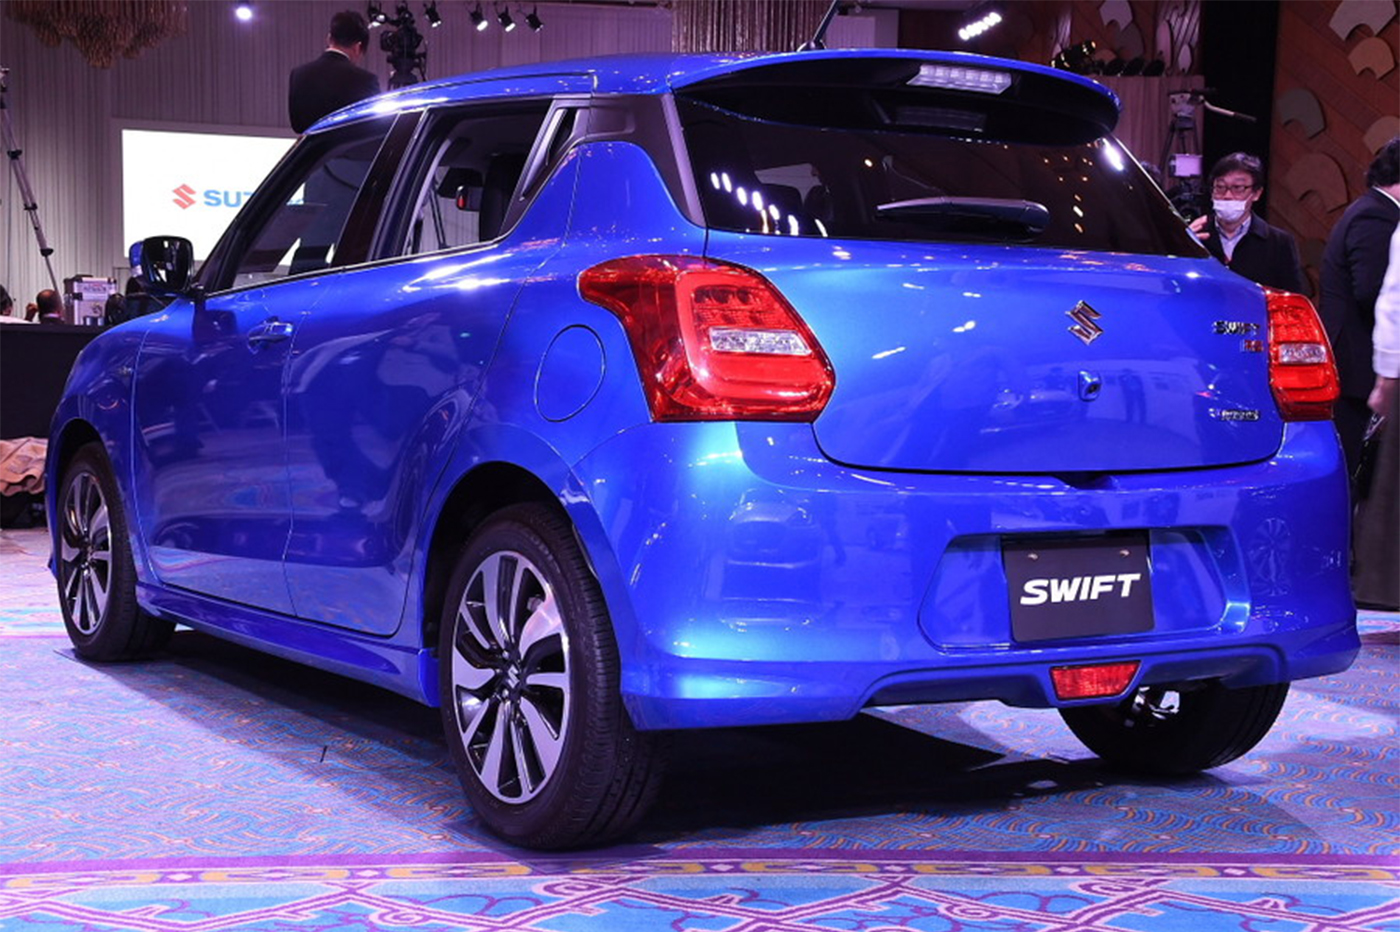 suzuki-swift-1.jpg